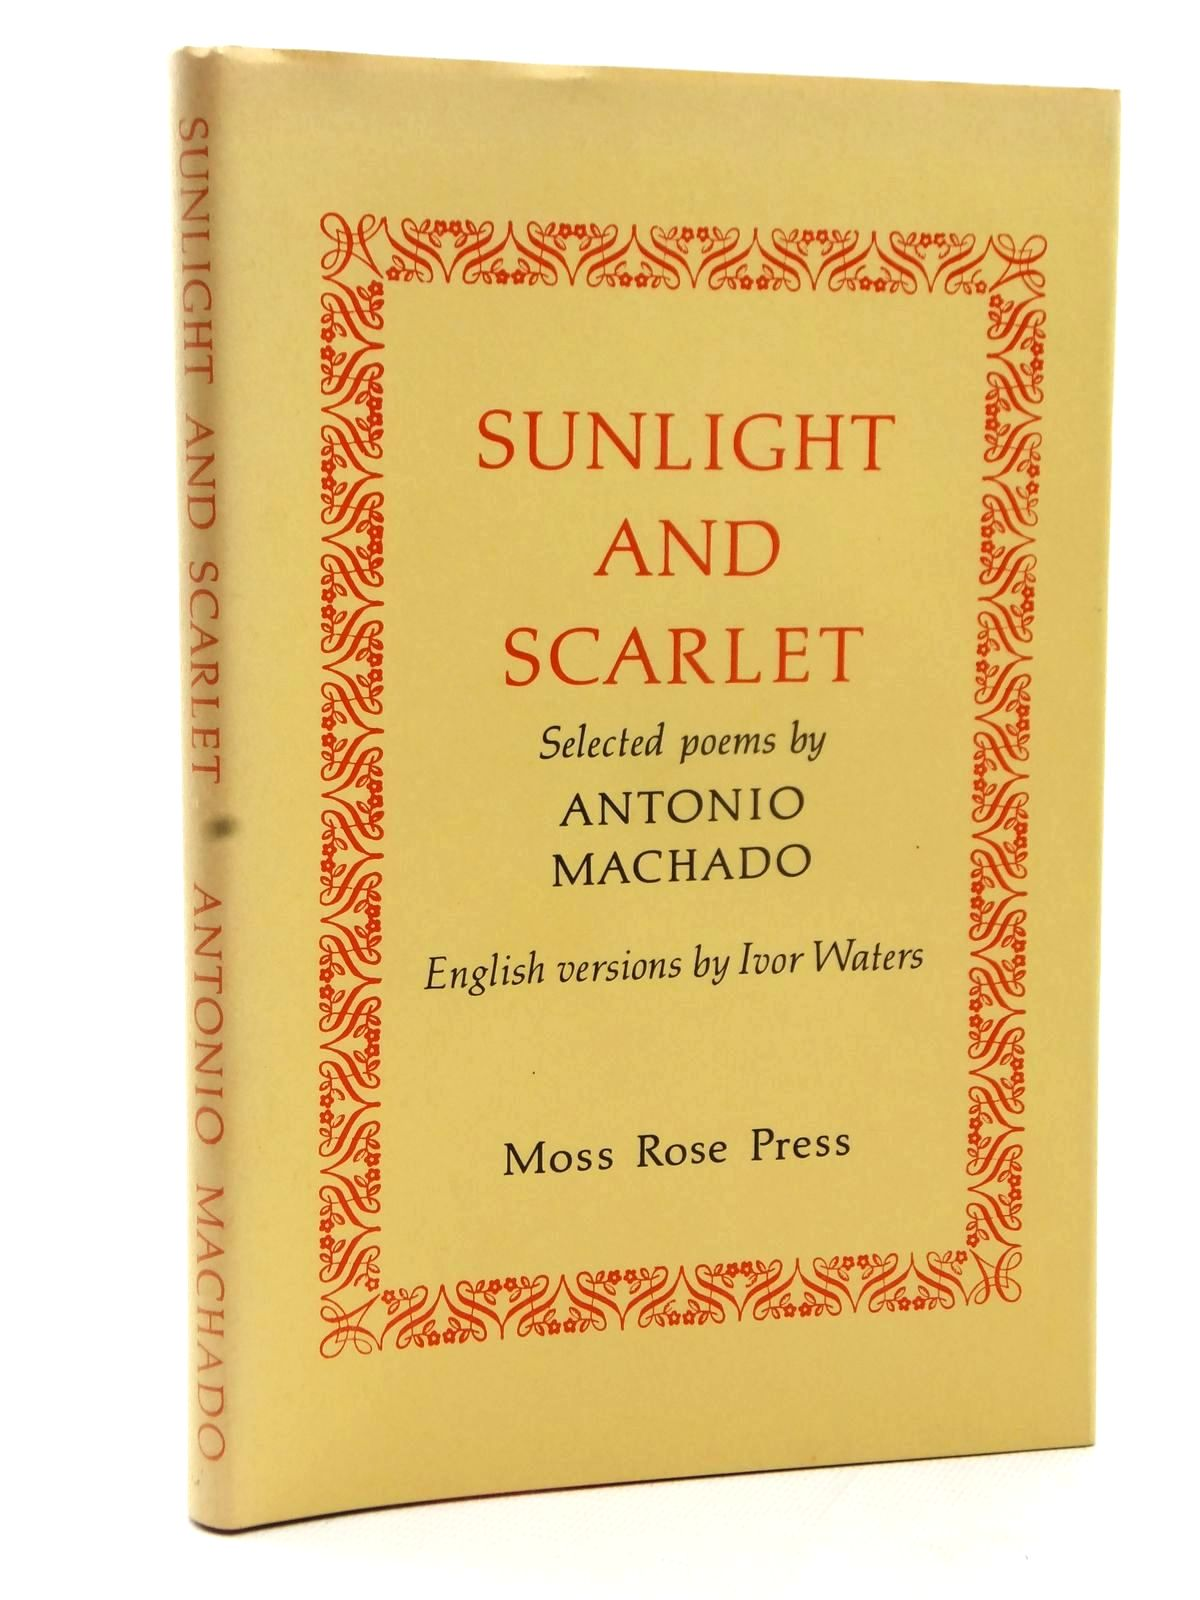 Photo of SUNLIGHT AND SCARLET written by Waters, Ivor Machado, Antonio published by Moss Rose Press (STOCK CODE: 1609079)  for sale by Stella & Rose's Books